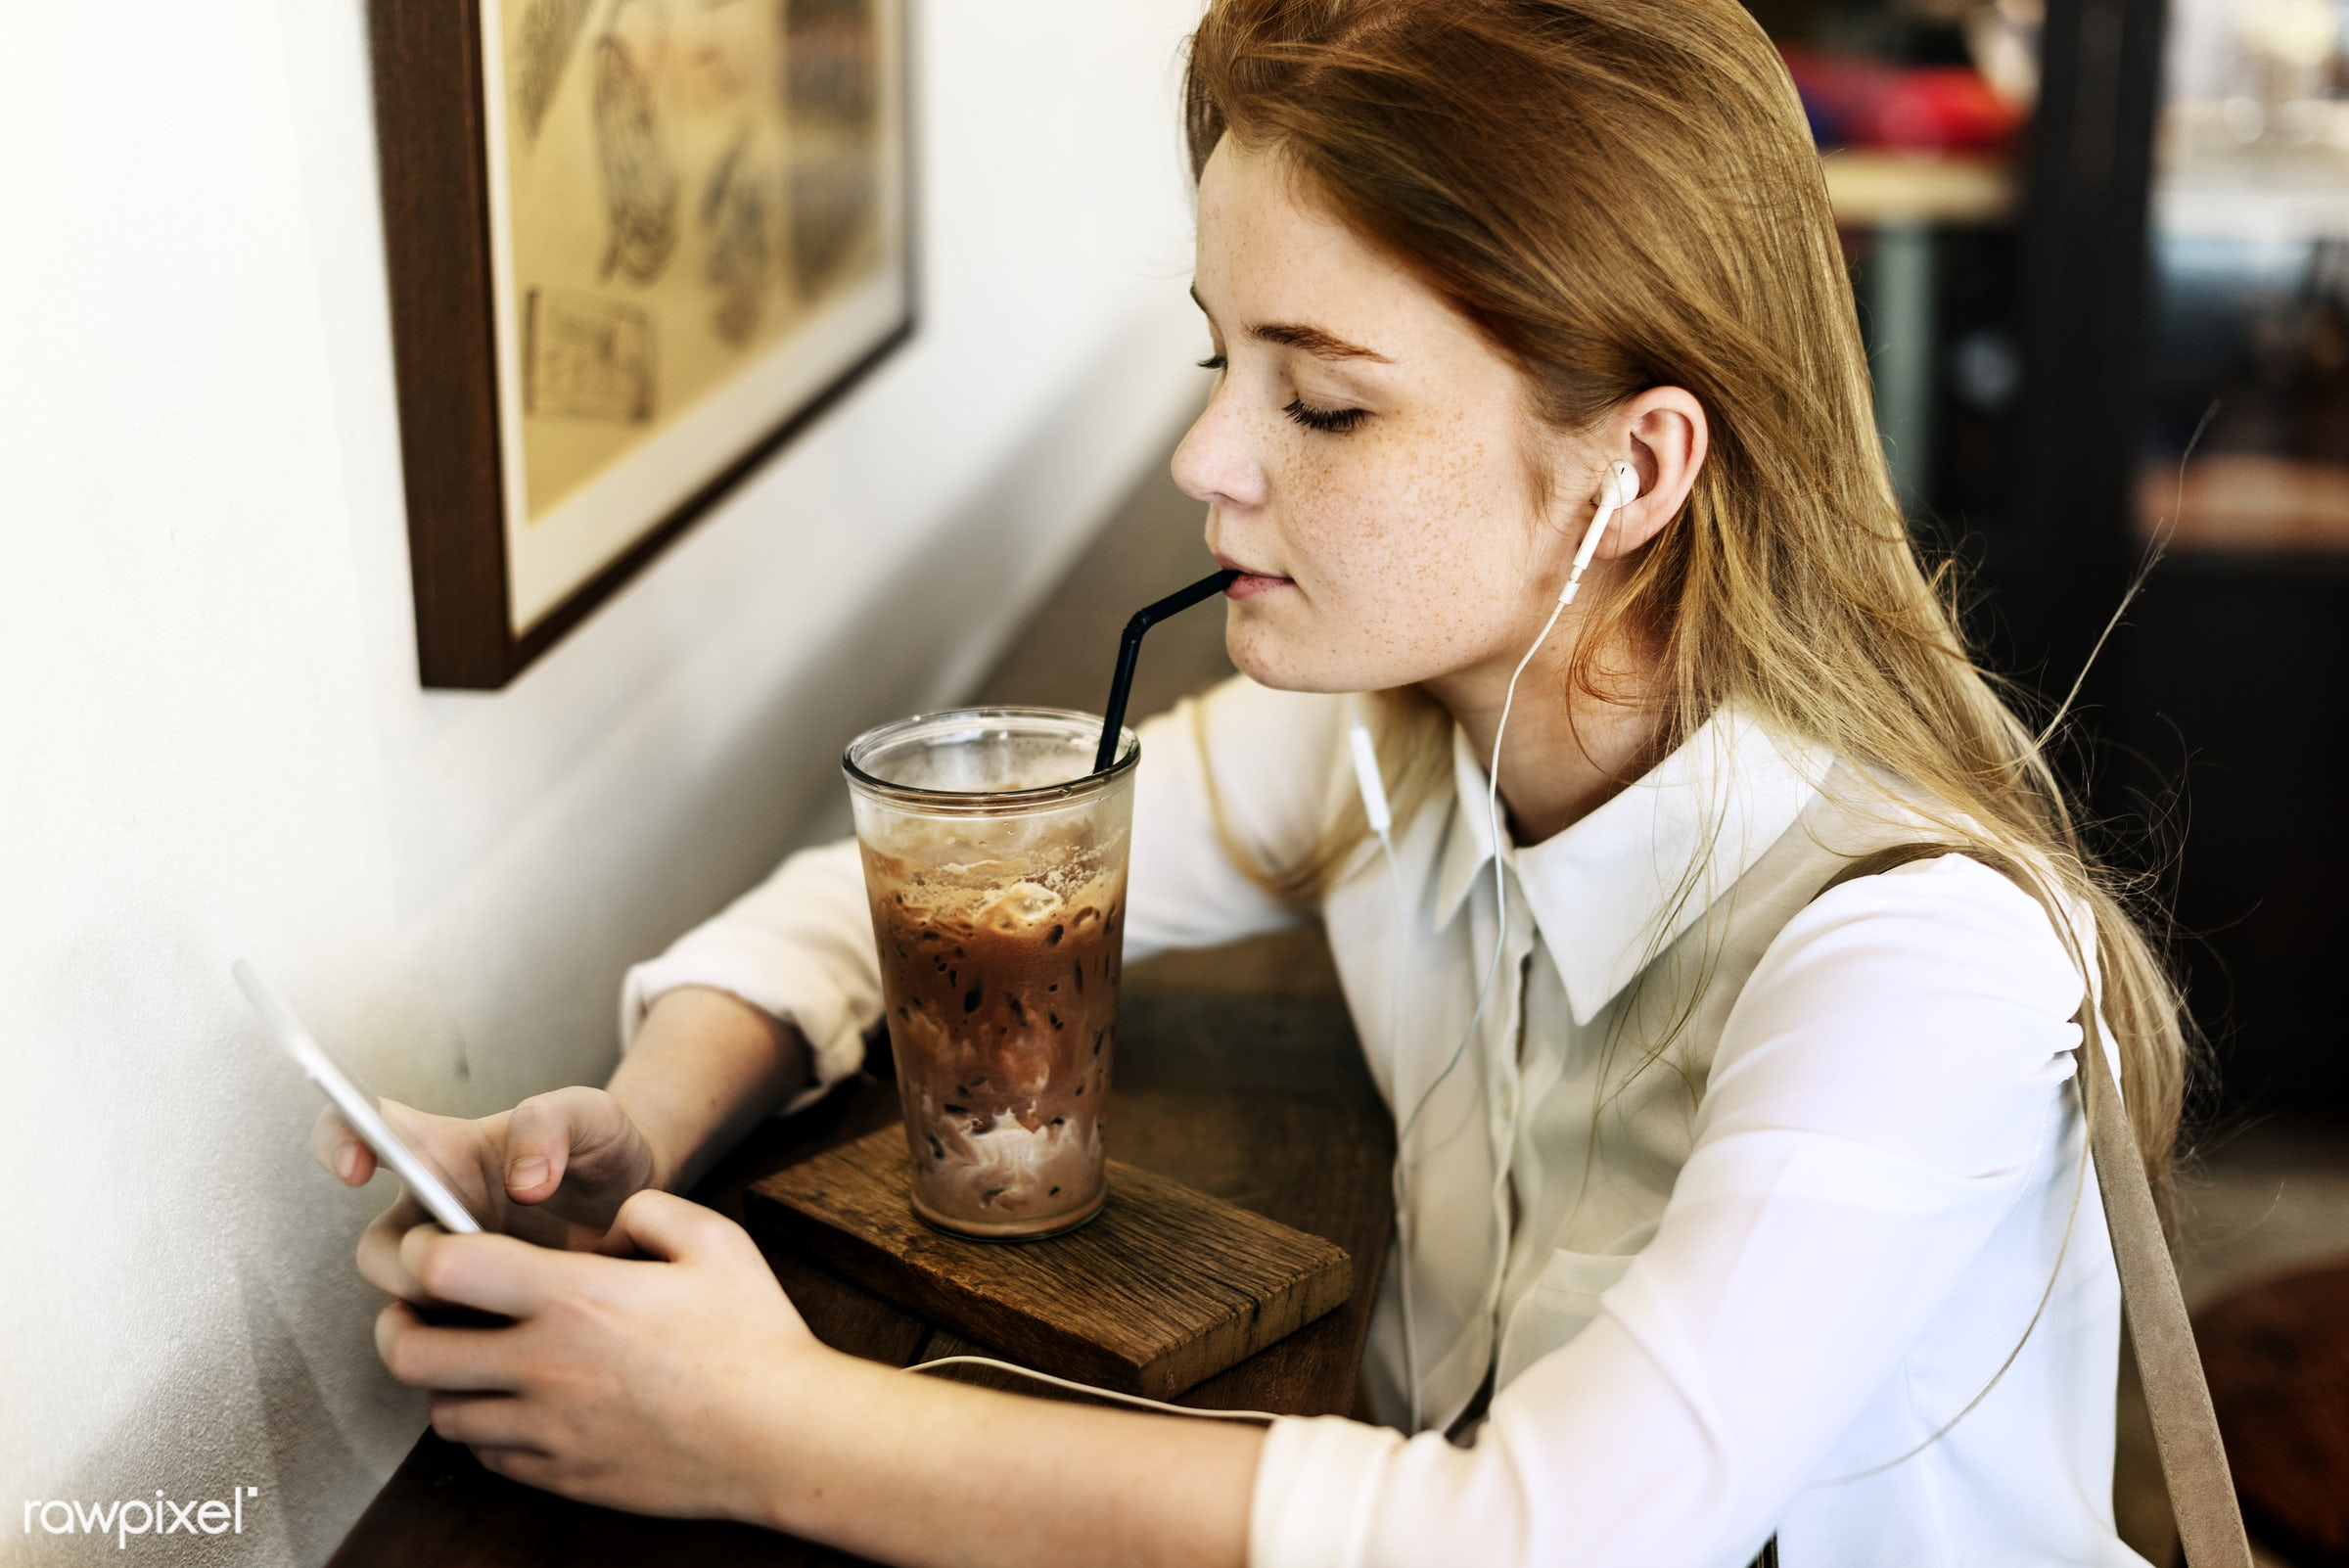 Young caucasian woman at a coffee shop - alone, aroma, beverage, break, cafe, caffeine, caucasian, cheerful, coffee, coffee...